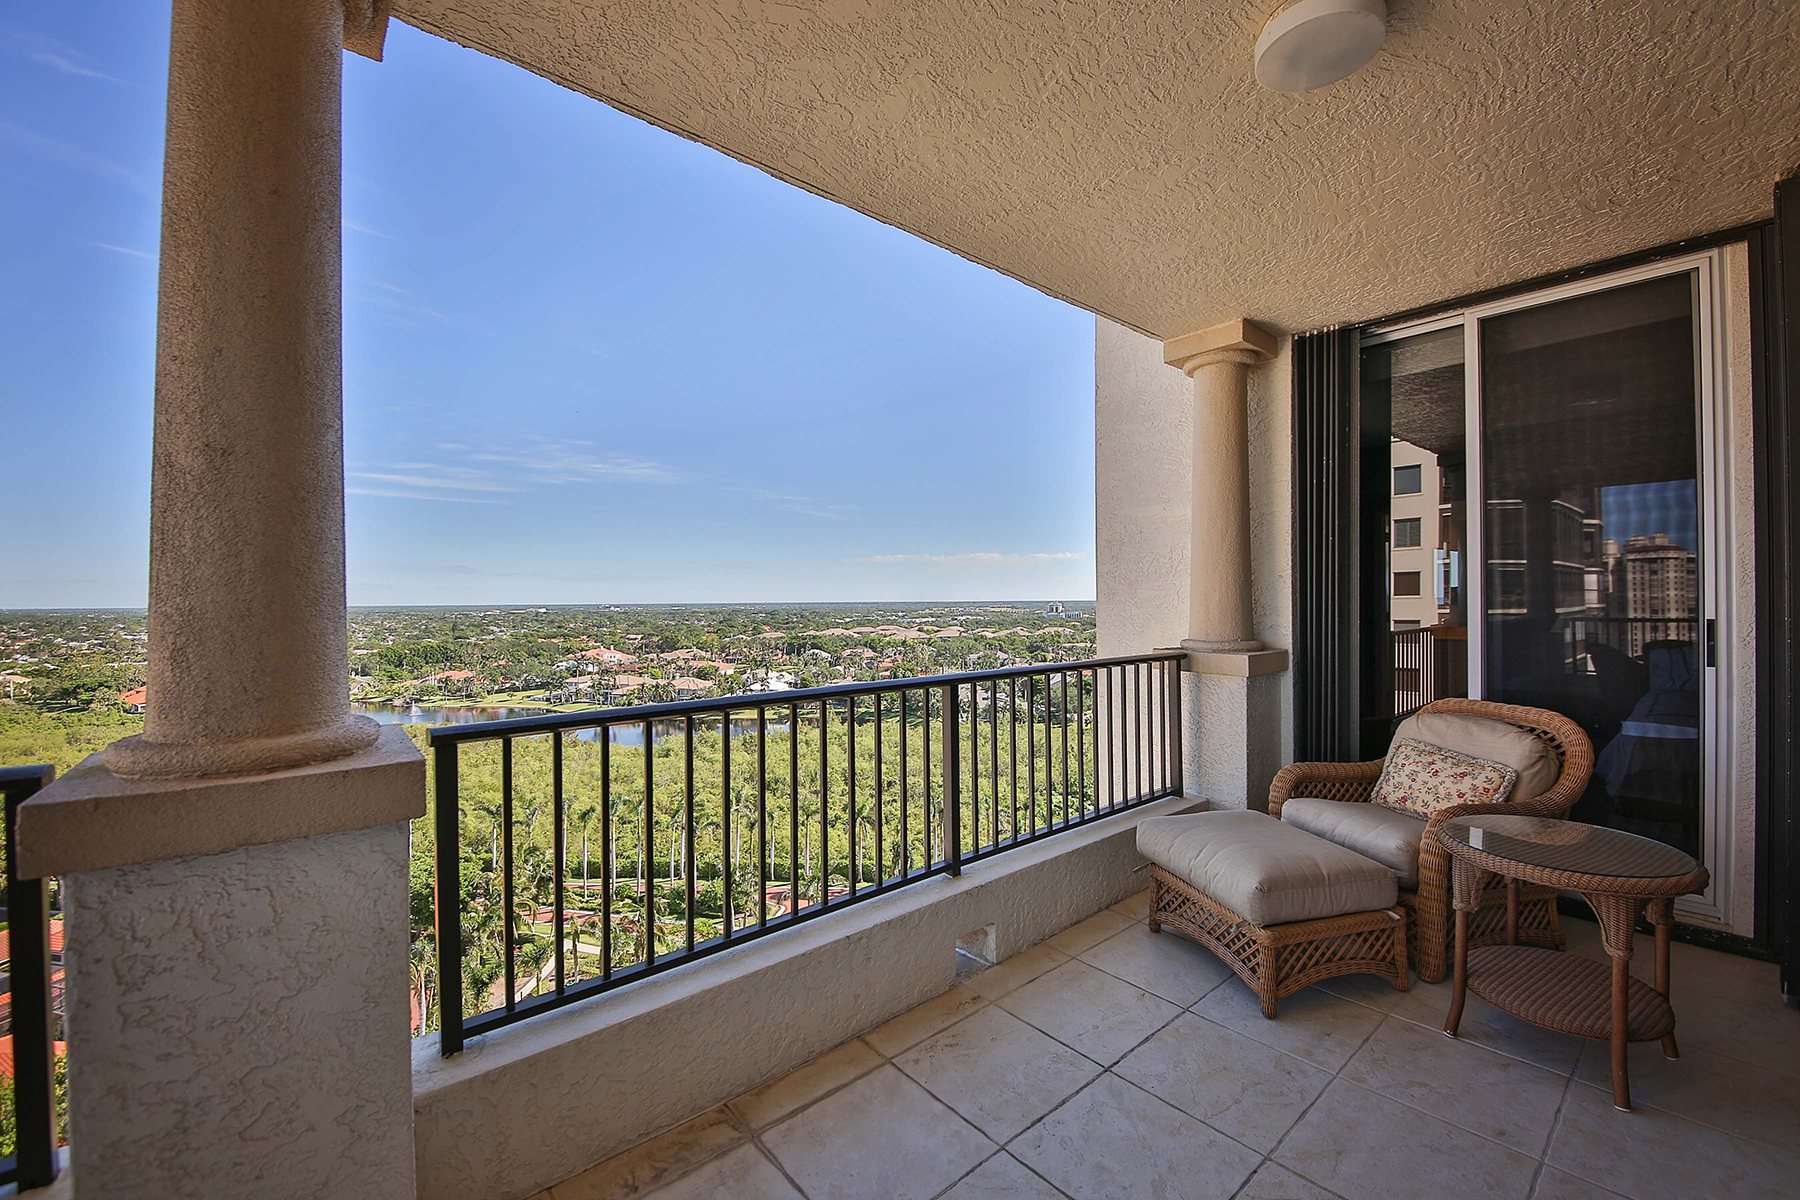 Additional photo for property listing at PELICAN BAY - TOSCANA AT BAY COLONY 8960  Bay Colony Dr 1604,  Naples, Florida 34108 United States